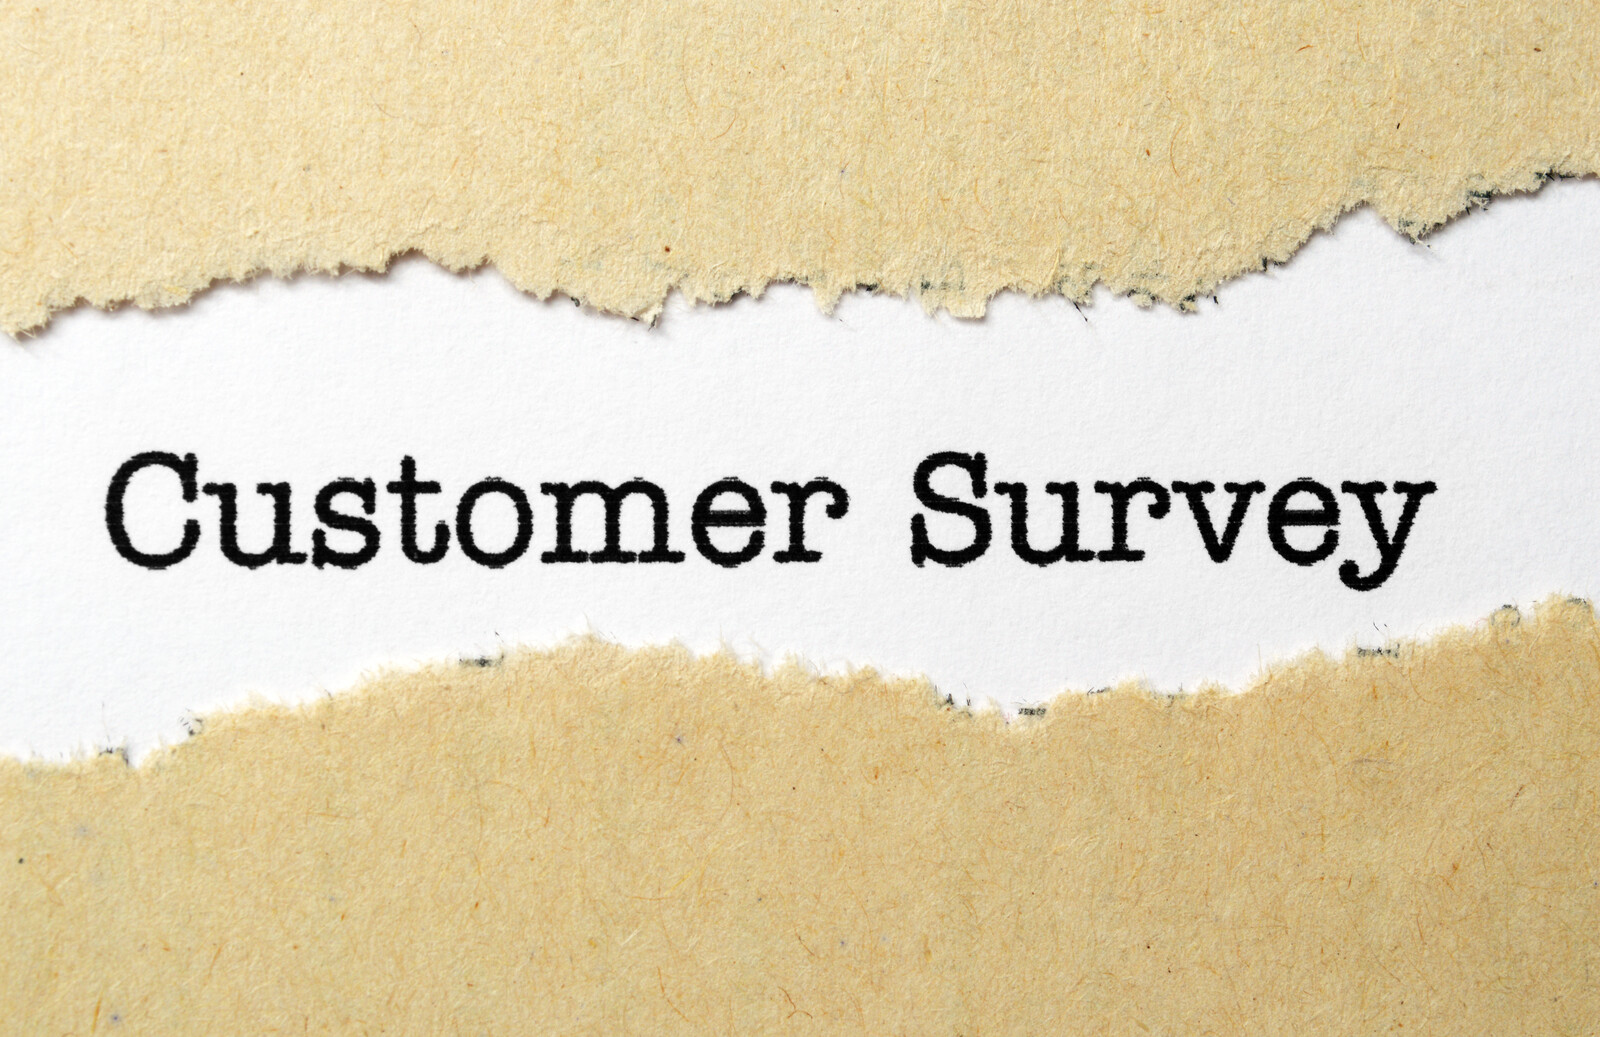 In Type font it says Customer Survey with ripped edges of an envelope on either side of the words